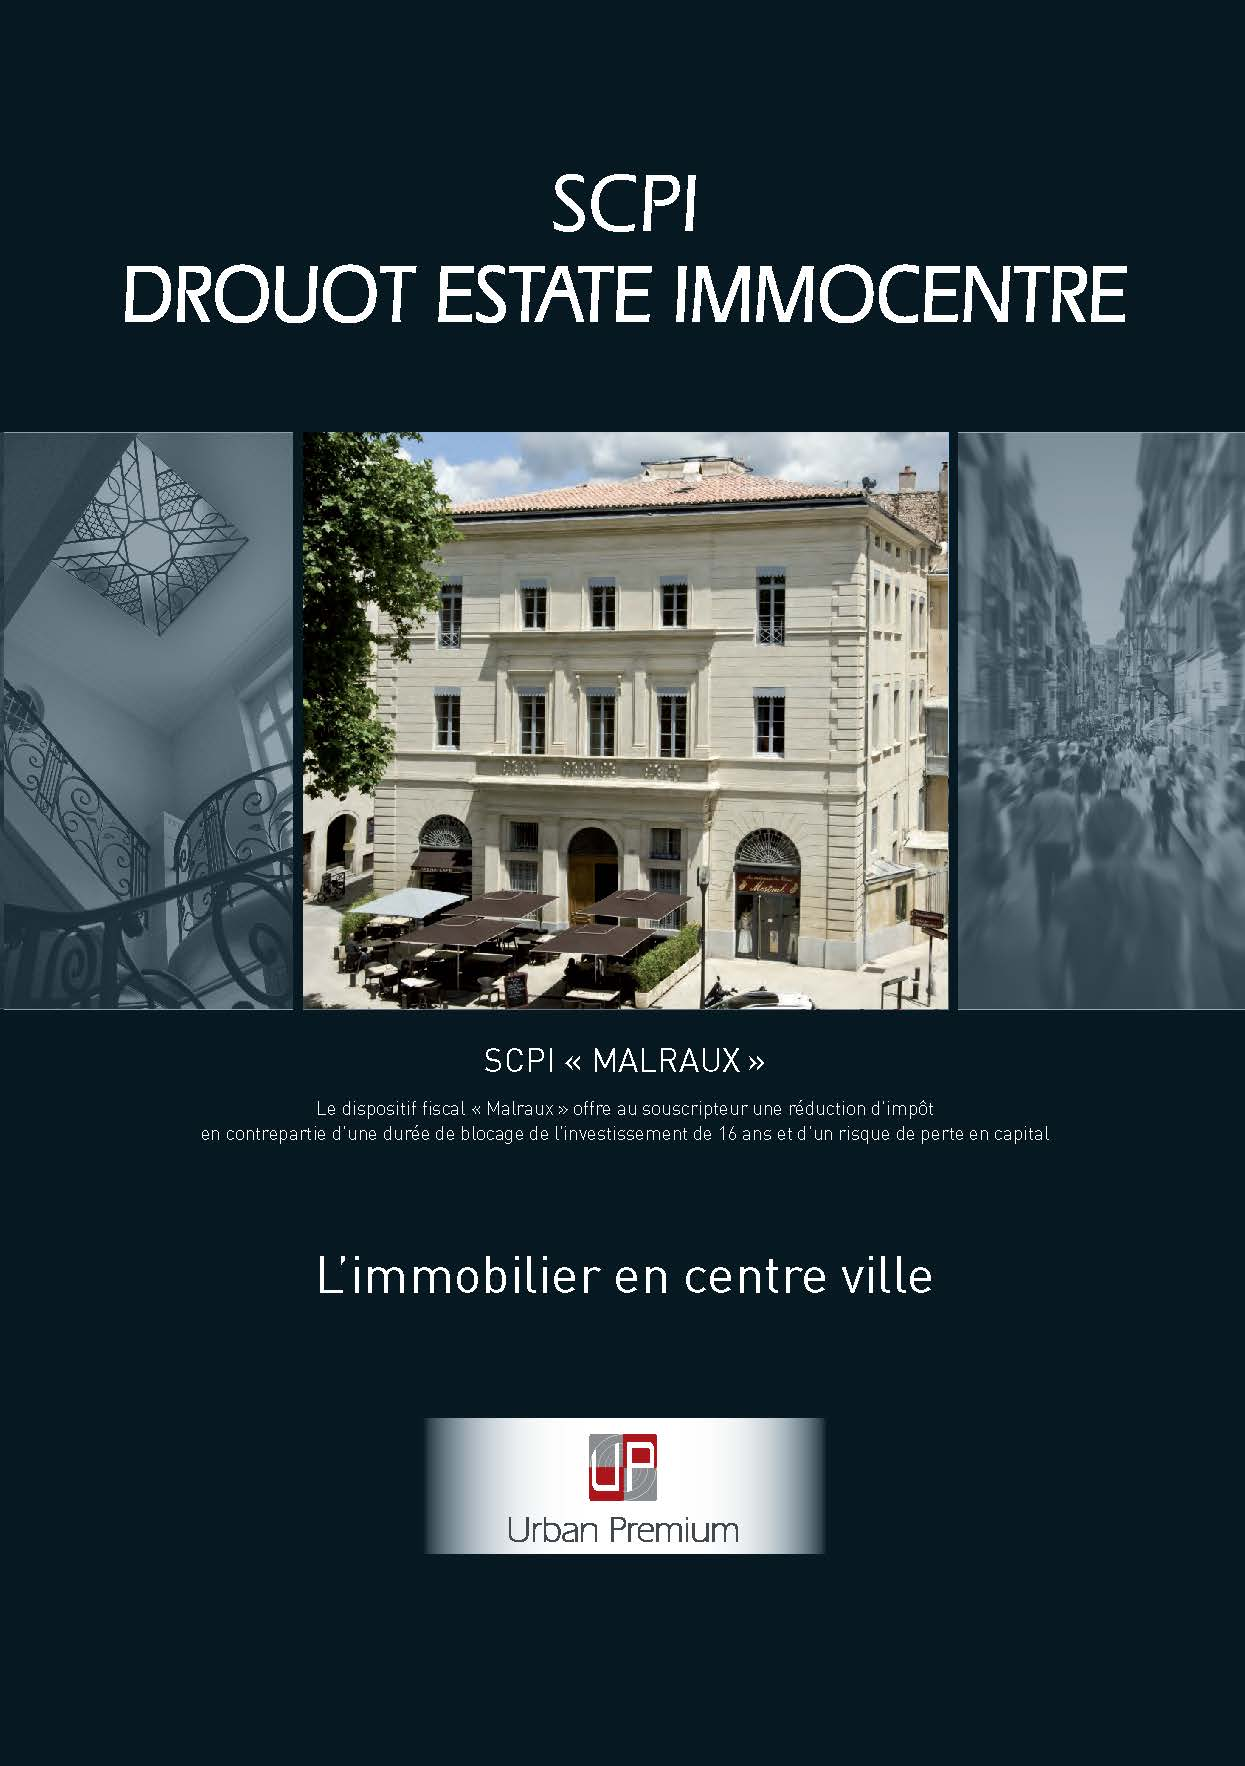 SCPI DROUOT ESTATE IMMOCENTRE (Malraux)